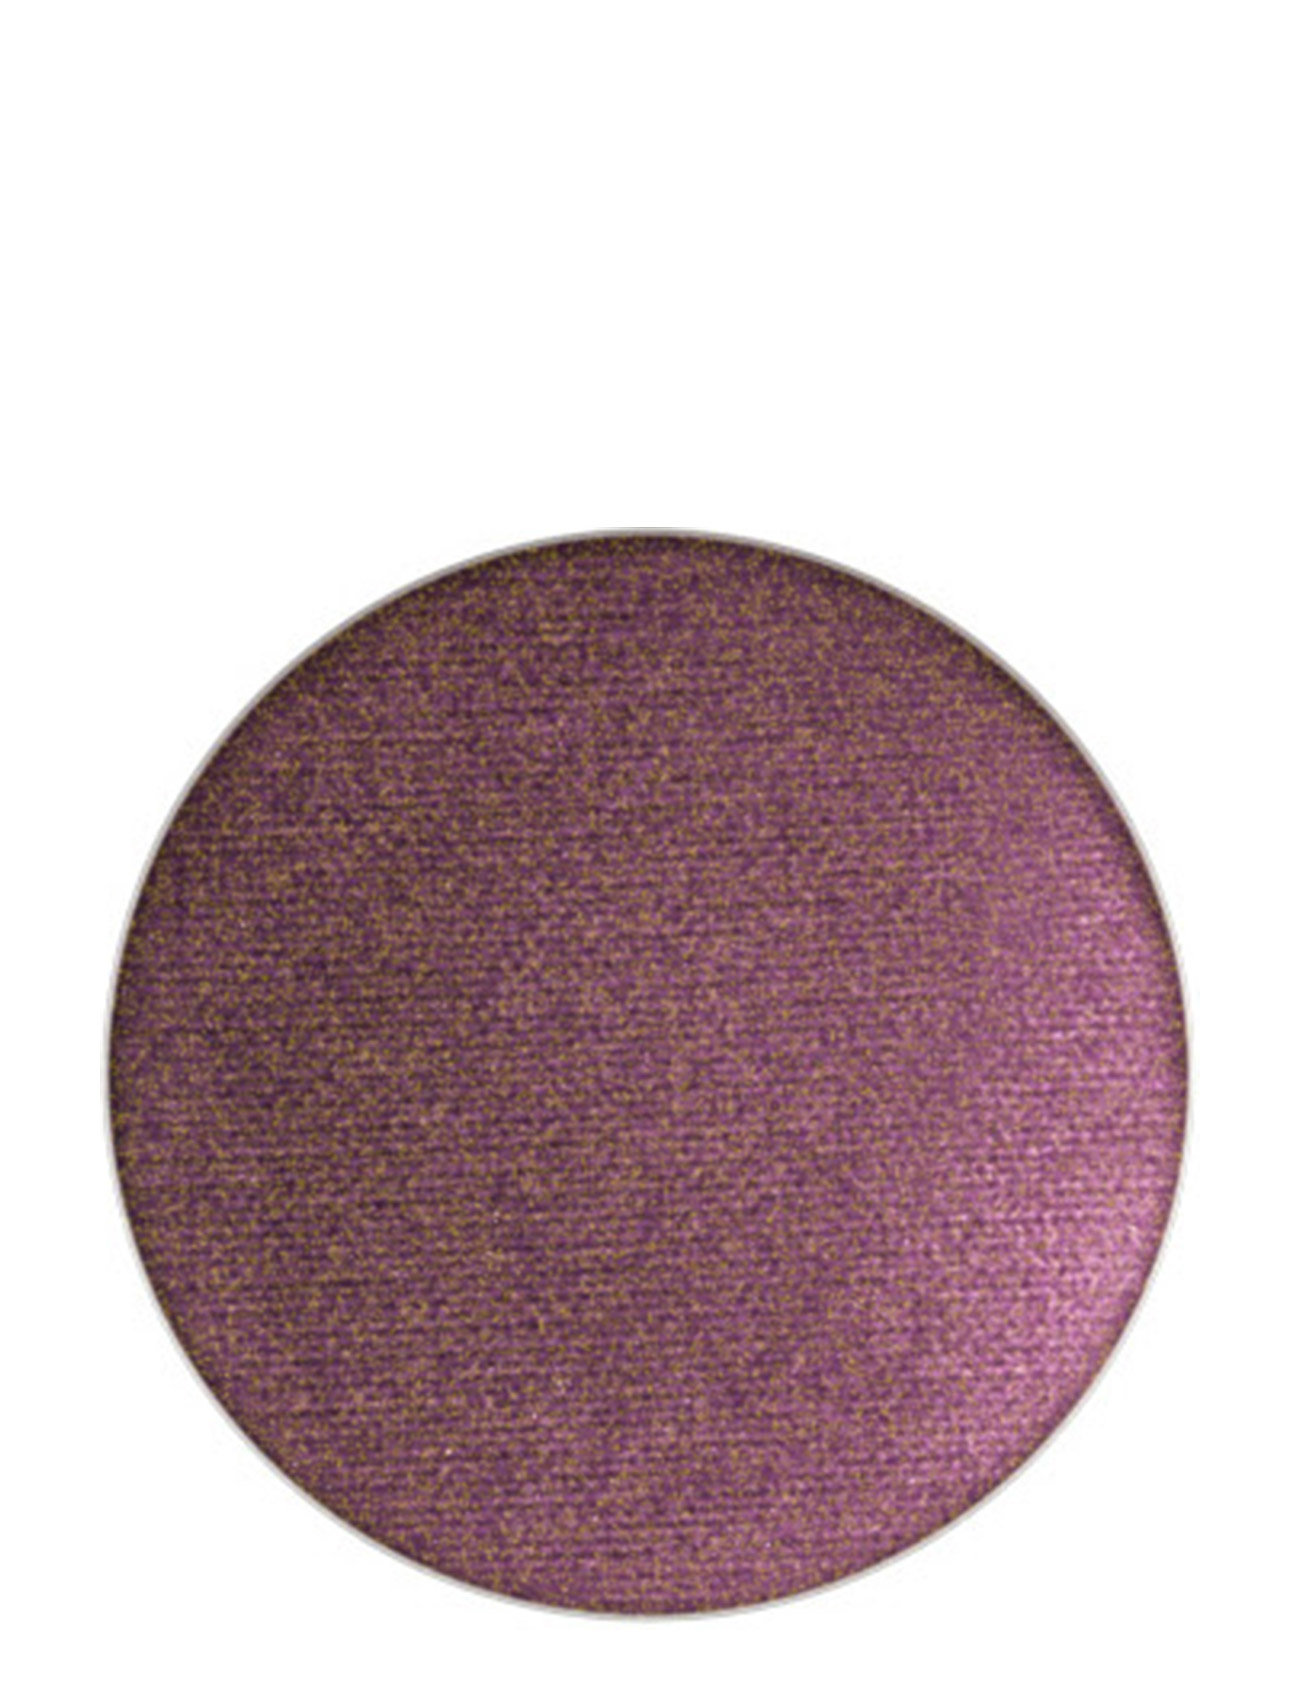 Image of Velvet Beauty Marked Beauty WOMEN Makeup Eyes Eyeshadow - Not Palettes Multi/mønstret M.A.C. (3067516425)